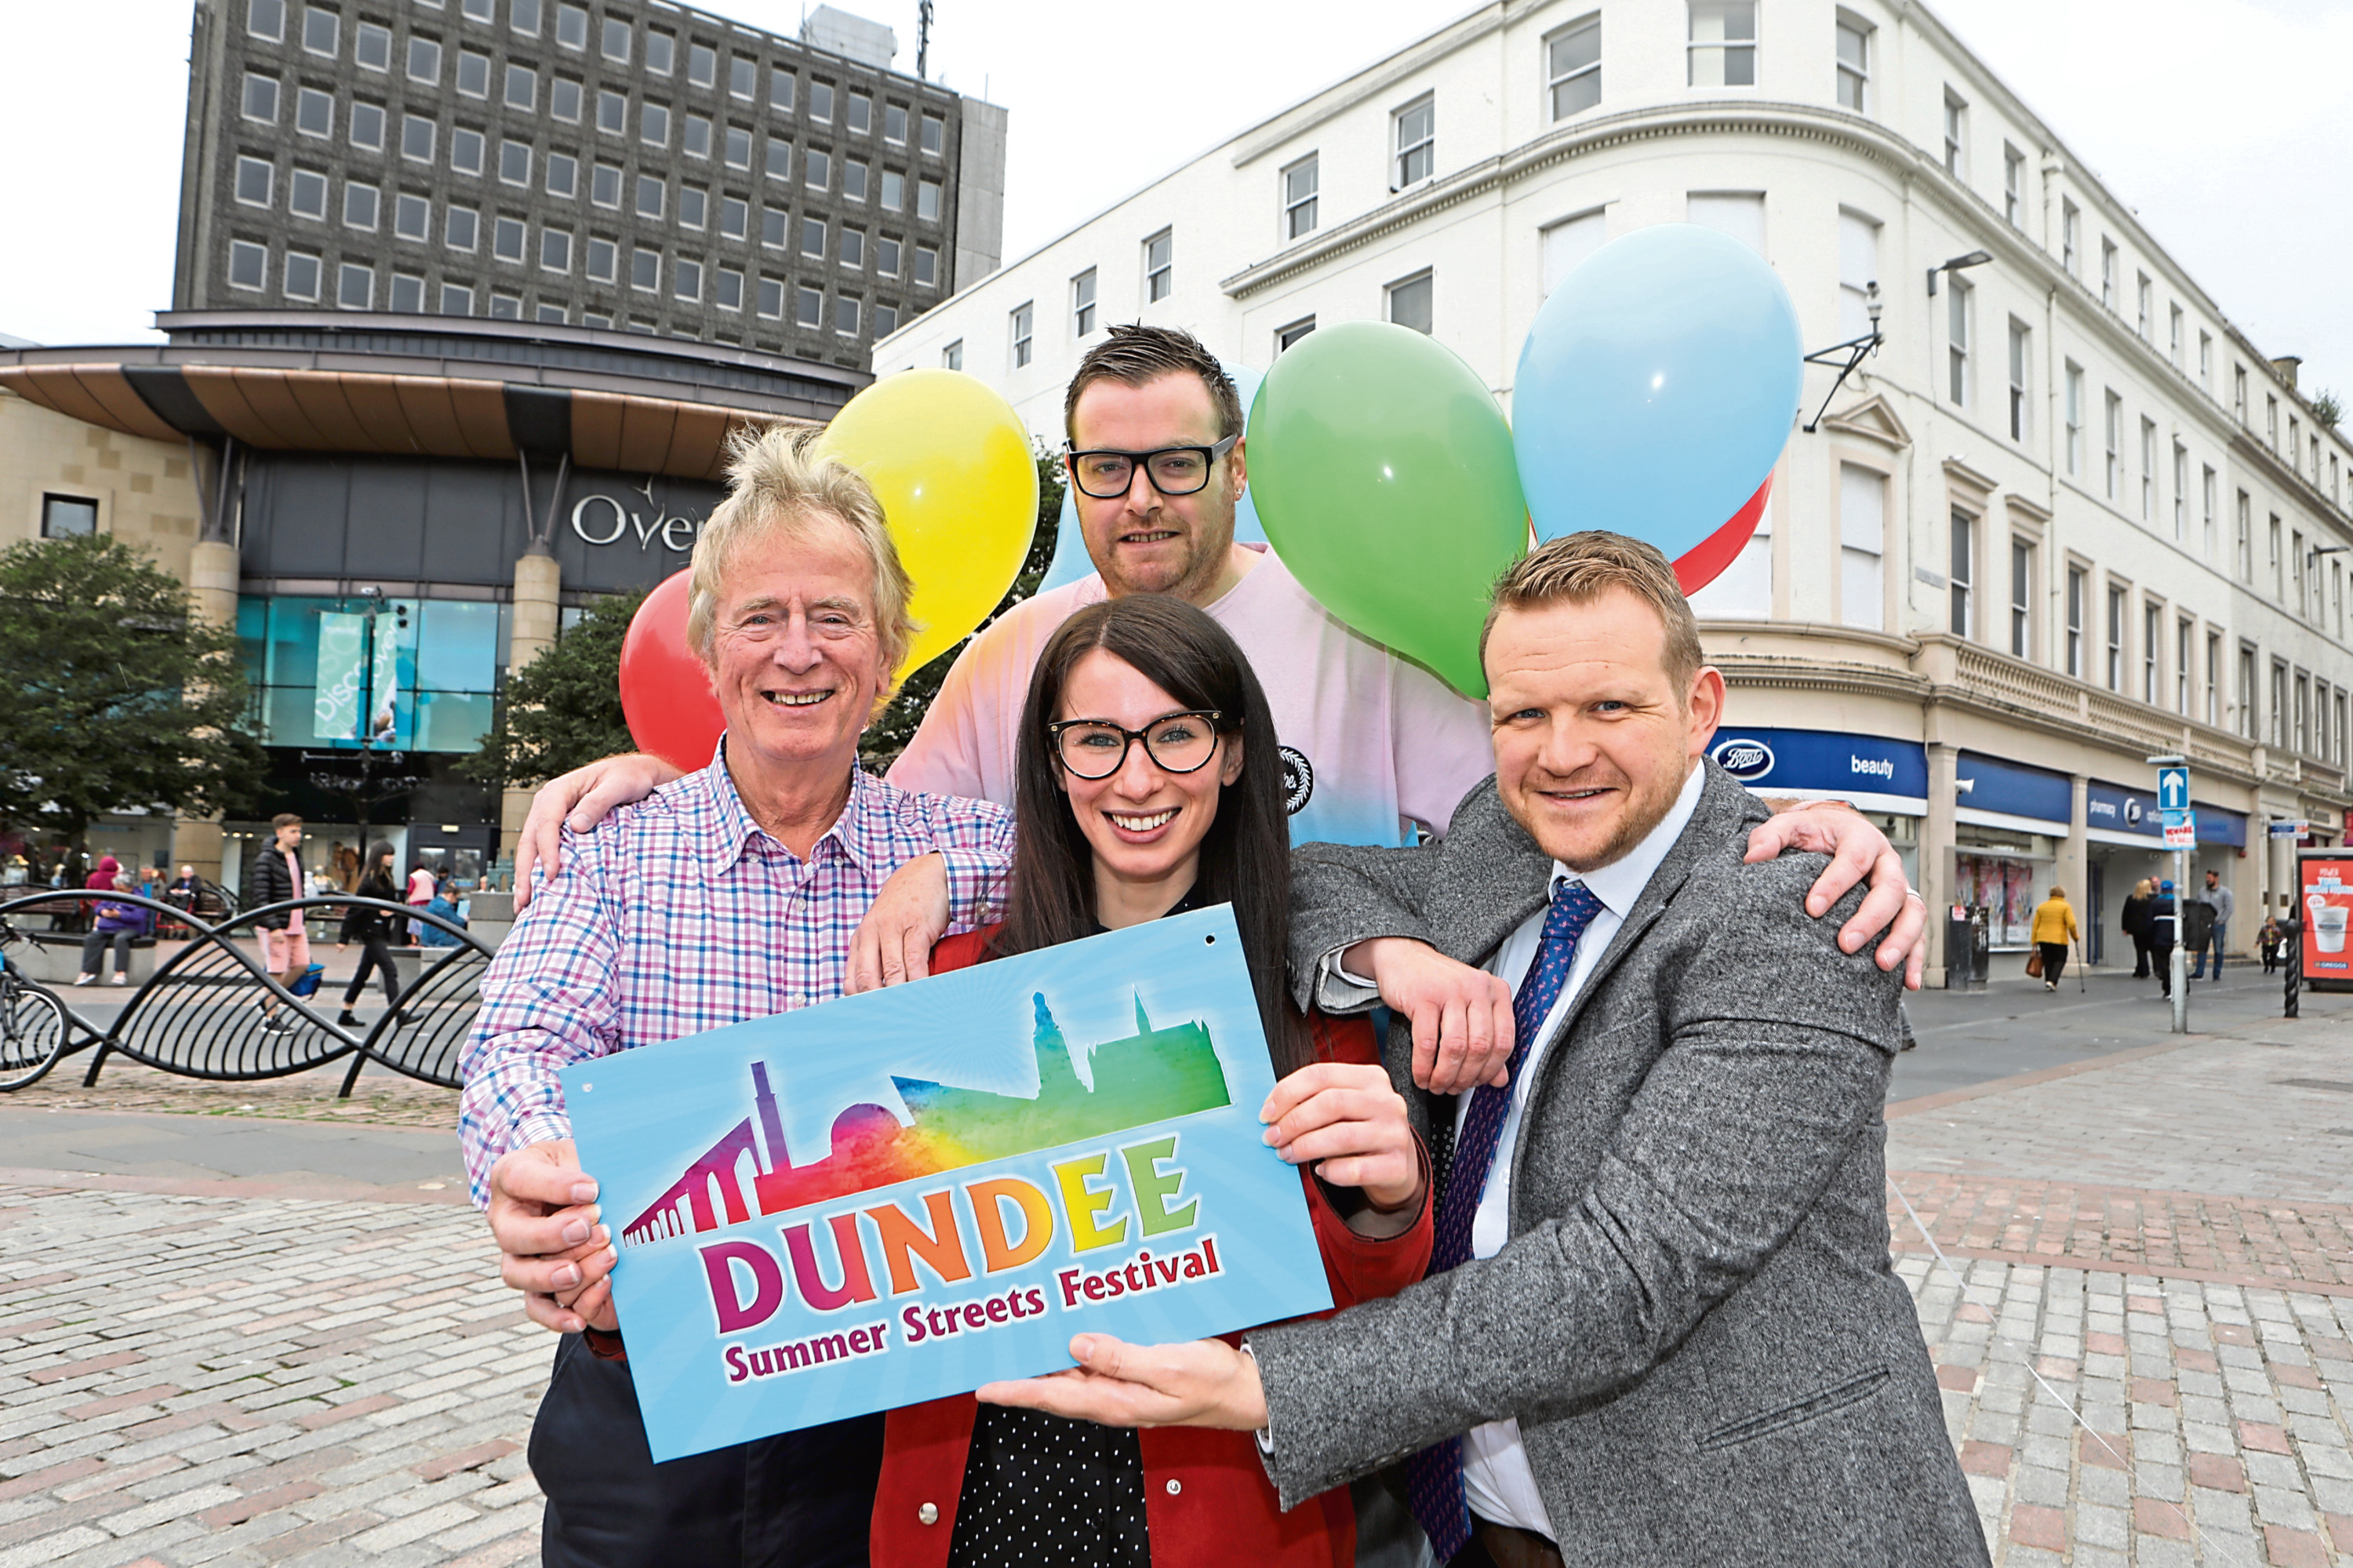 From left: Andi Lothian, from Insights, Metta Ramsay, retail manager of the Overgate, and councillor Alan Ross.  Behind Metta is David Hamilton of Ninja Kiwi.